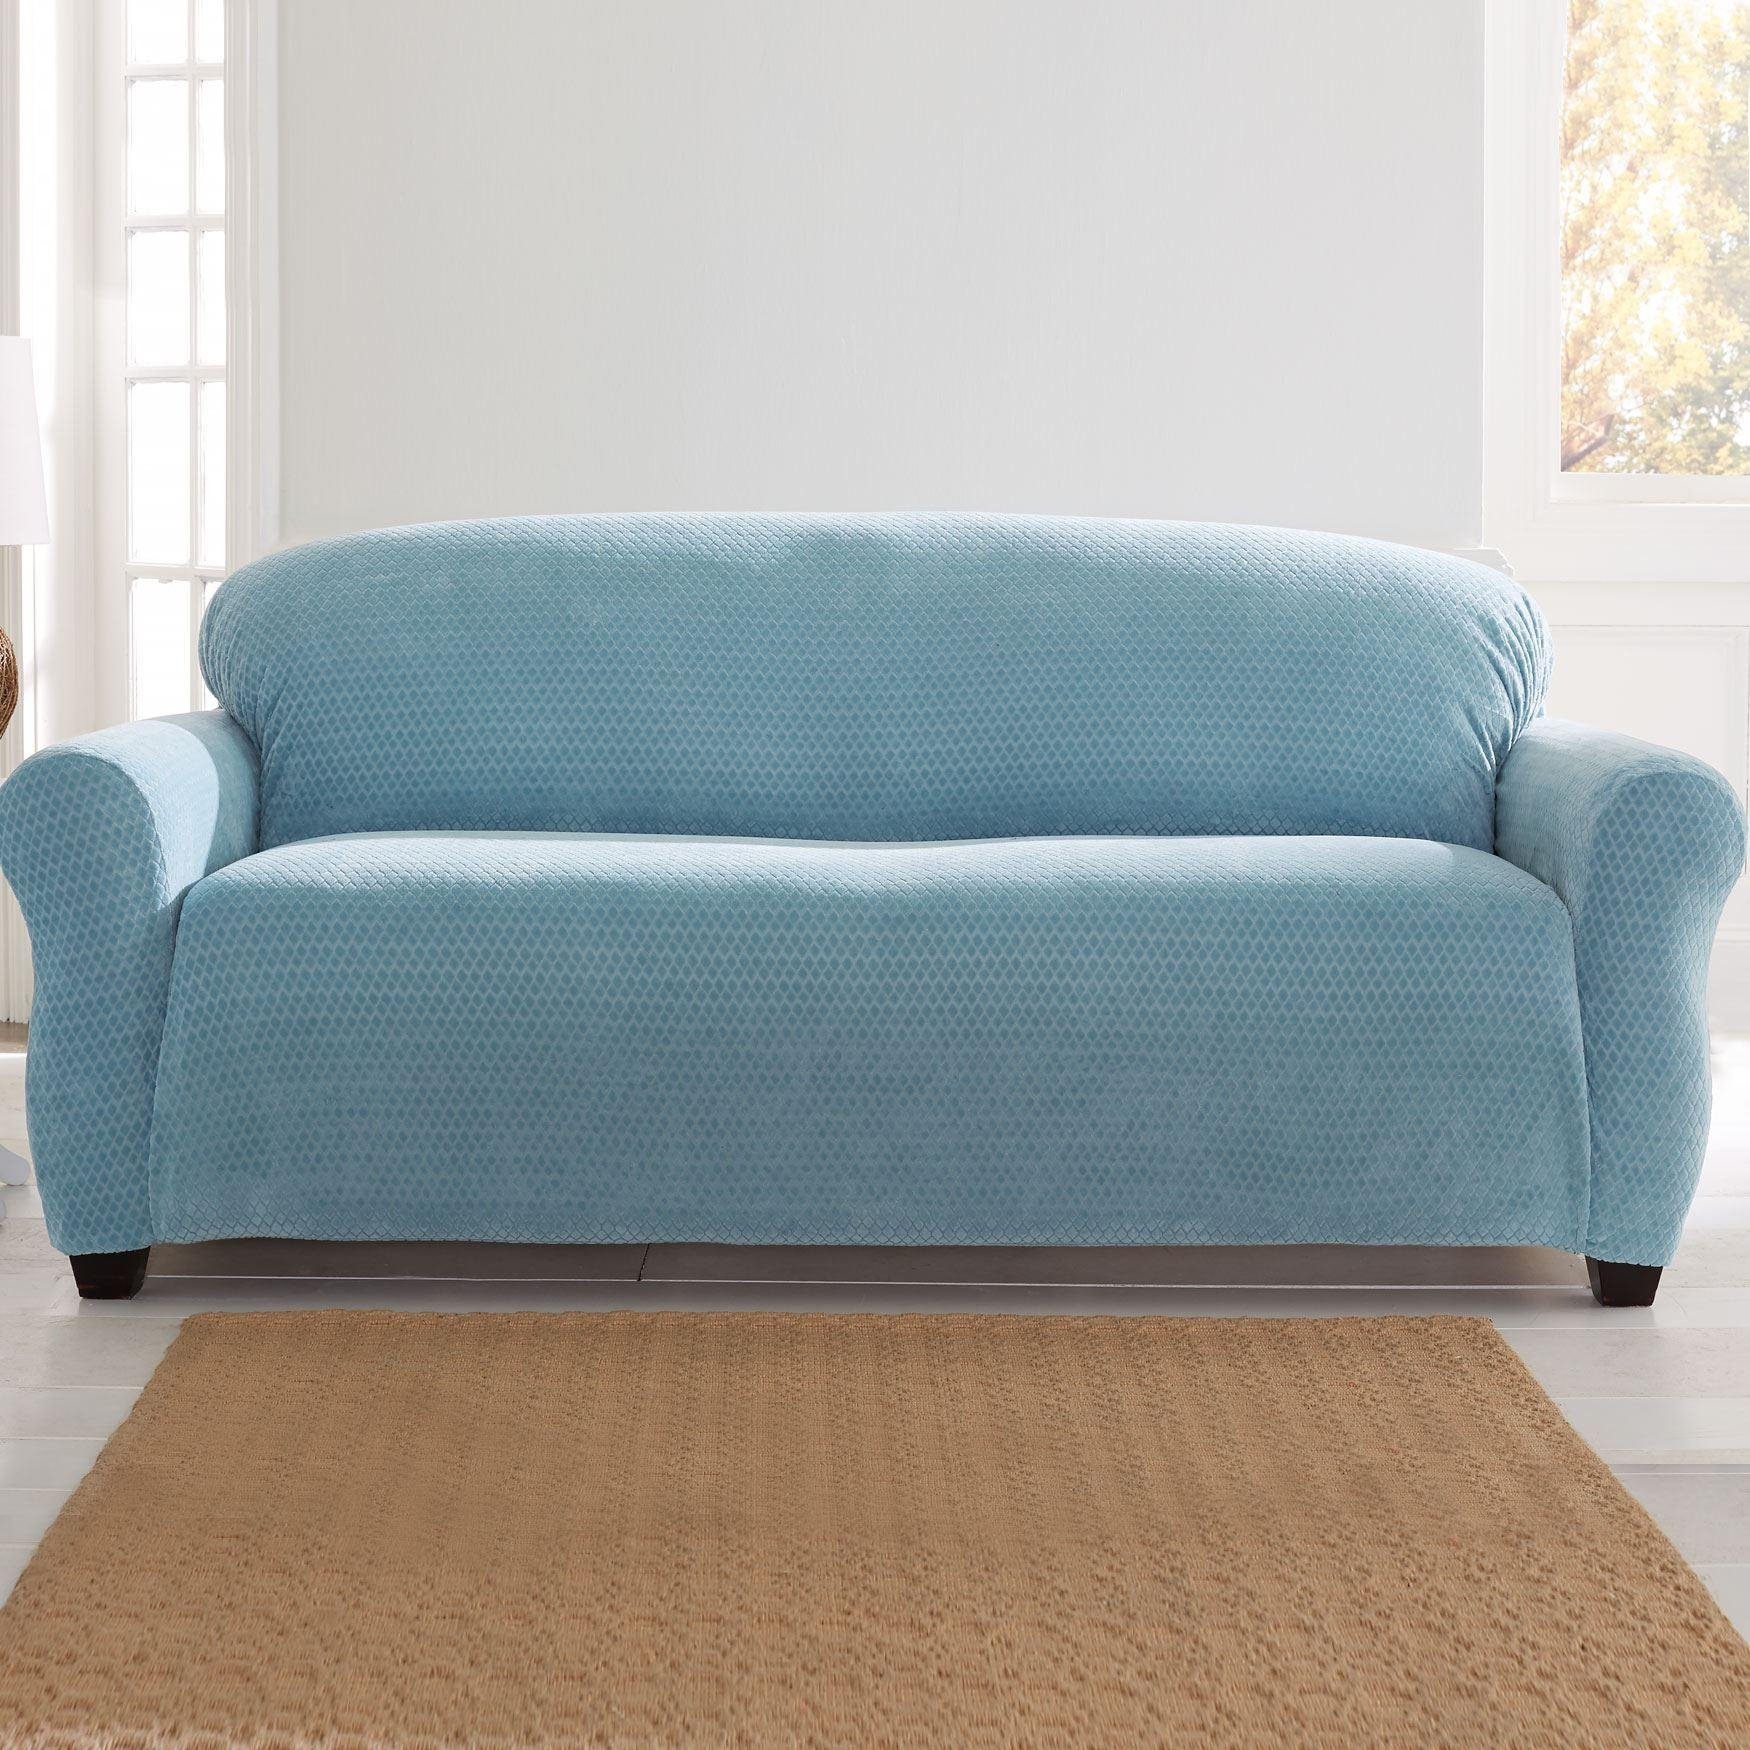 Furniture: Cool Stretch Sofa Covers To Protect And Renew Your Sofa For Teal Sofa Slipcovers (Image 5 of 20)